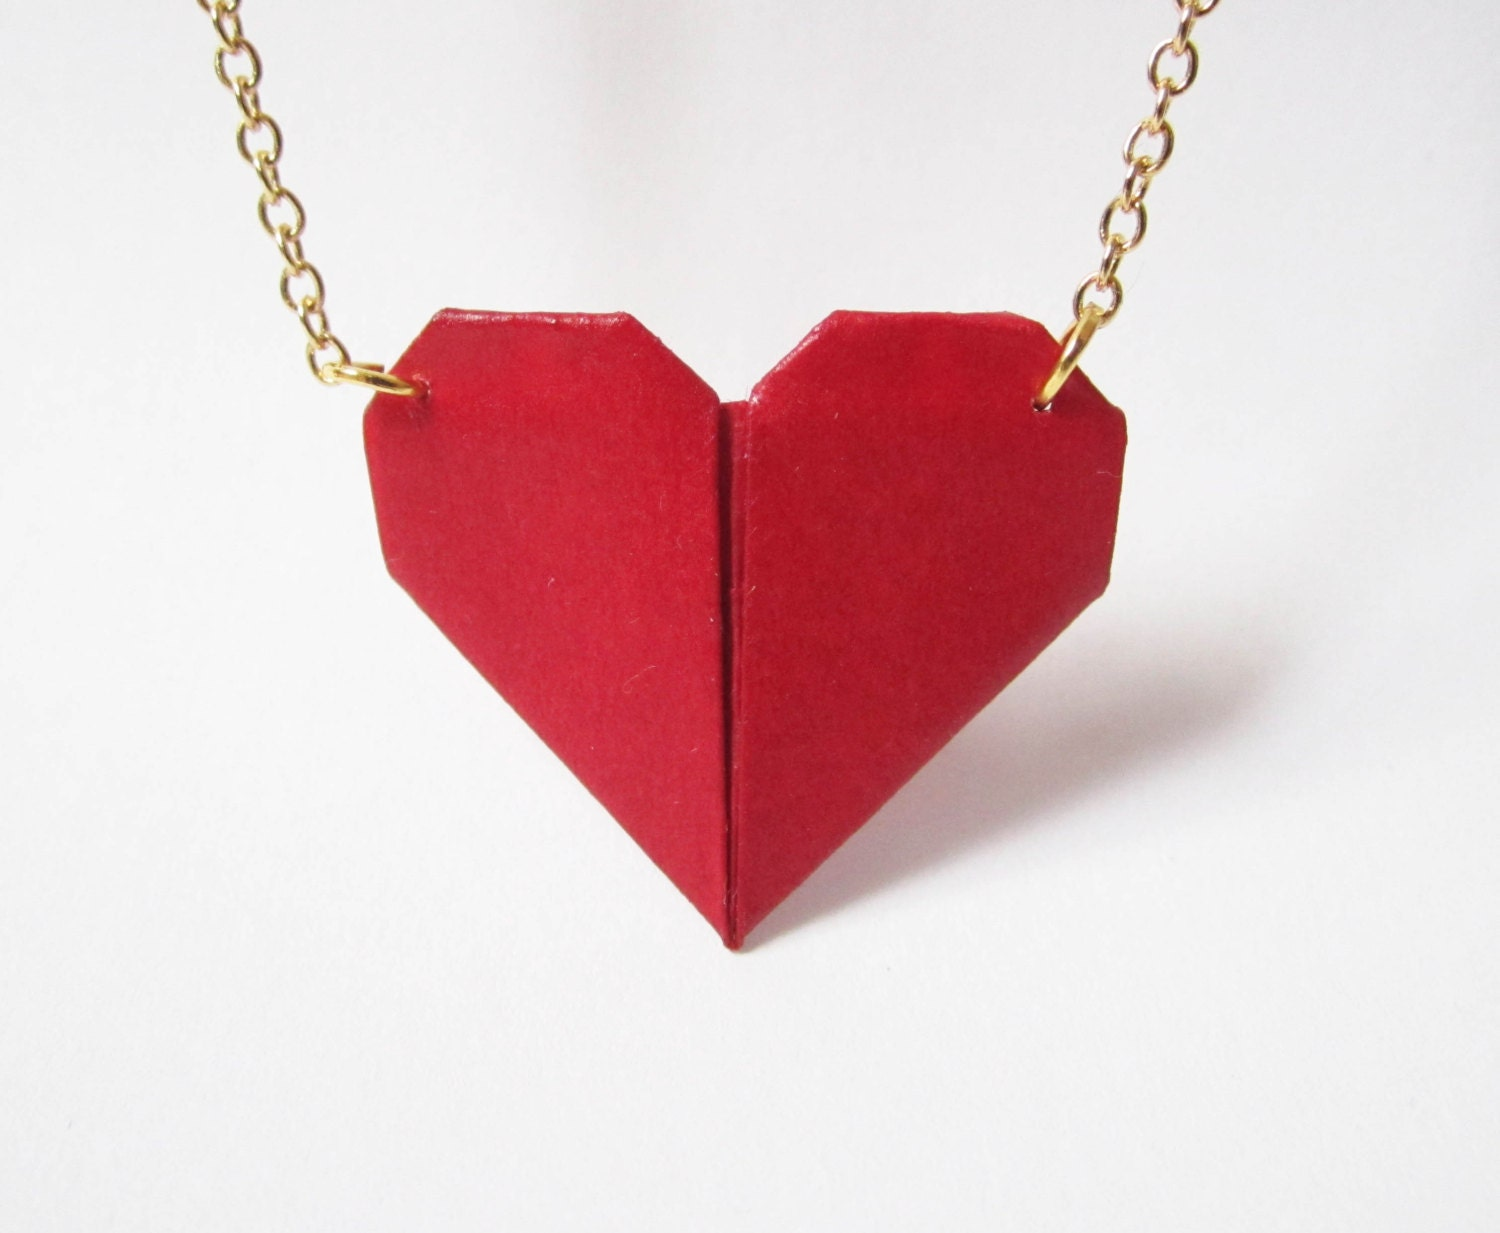 Origami heart necklace // SALE 20% - photo#28